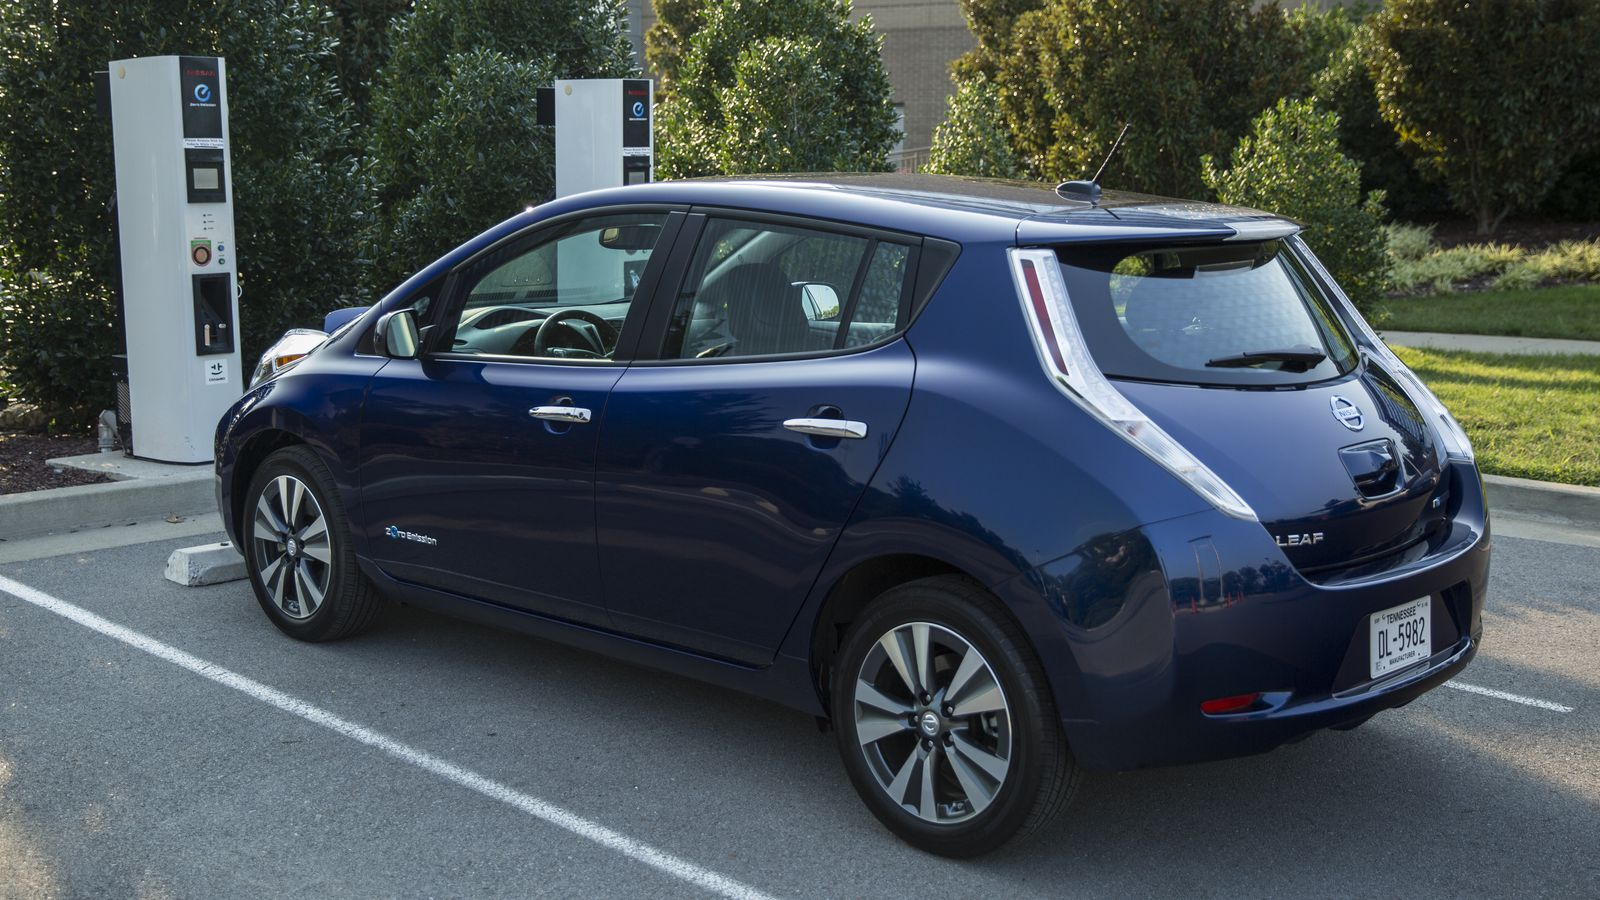 leaked photos of new all electric leaf provide first look at